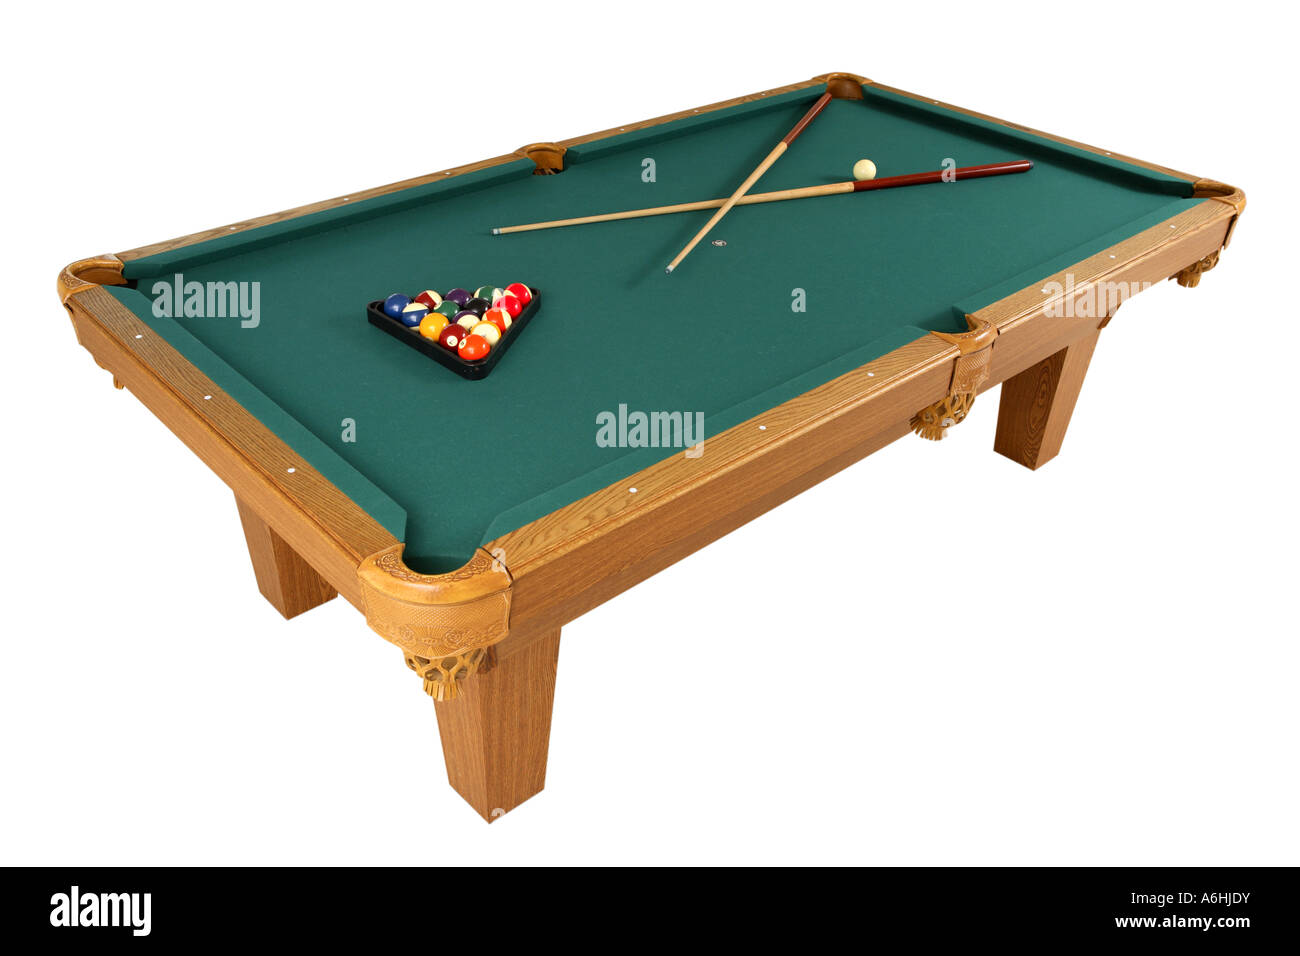 Pool Table Cut Out On White Background Stock Photo Alamy - White billiard table